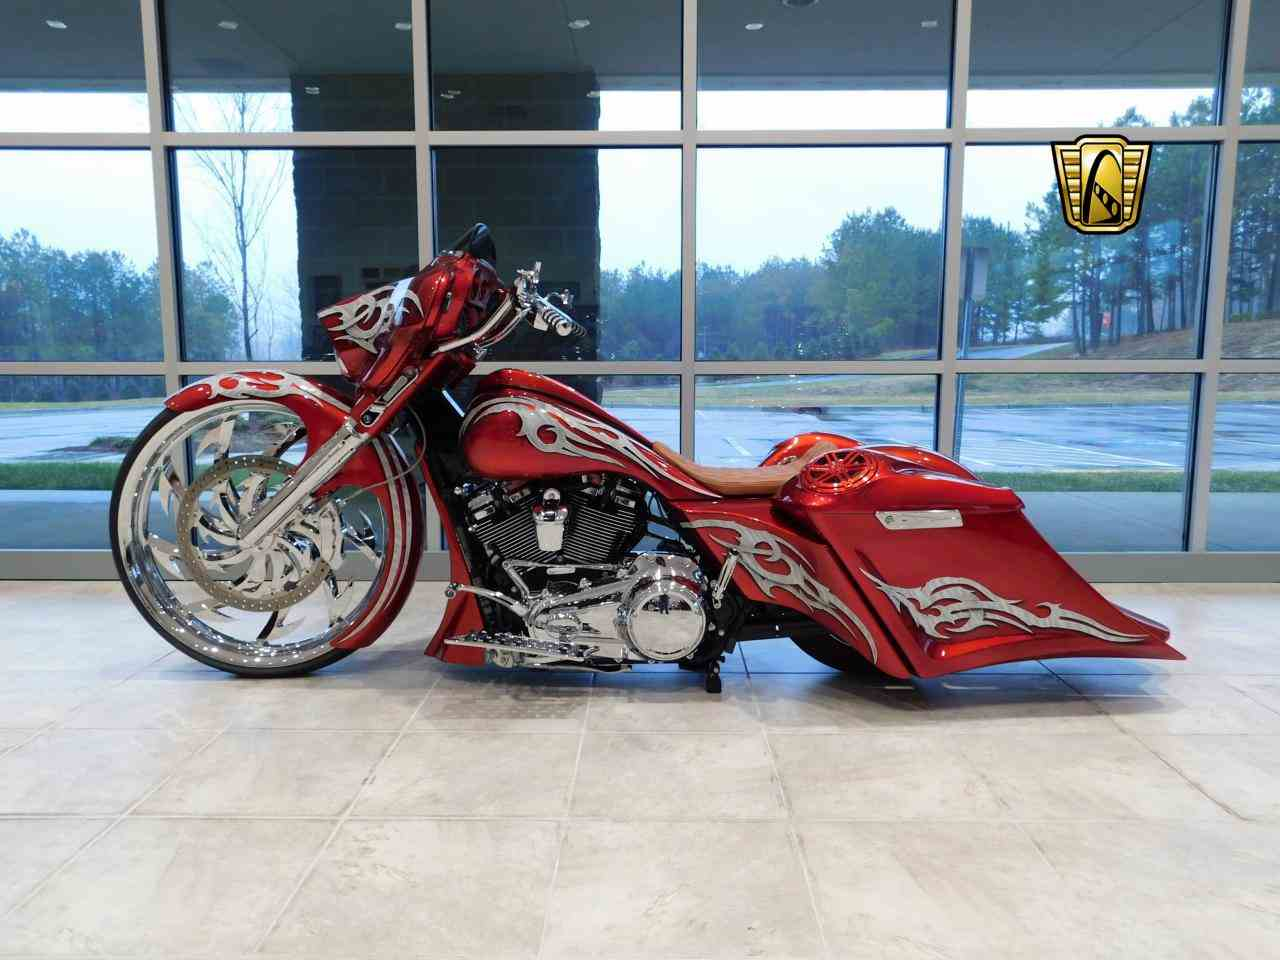 Large Picture of '17 Harley-Davidson Motorcycle - $98,000.00 Offered by Gateway Classic Cars - Atlanta - MOAJ